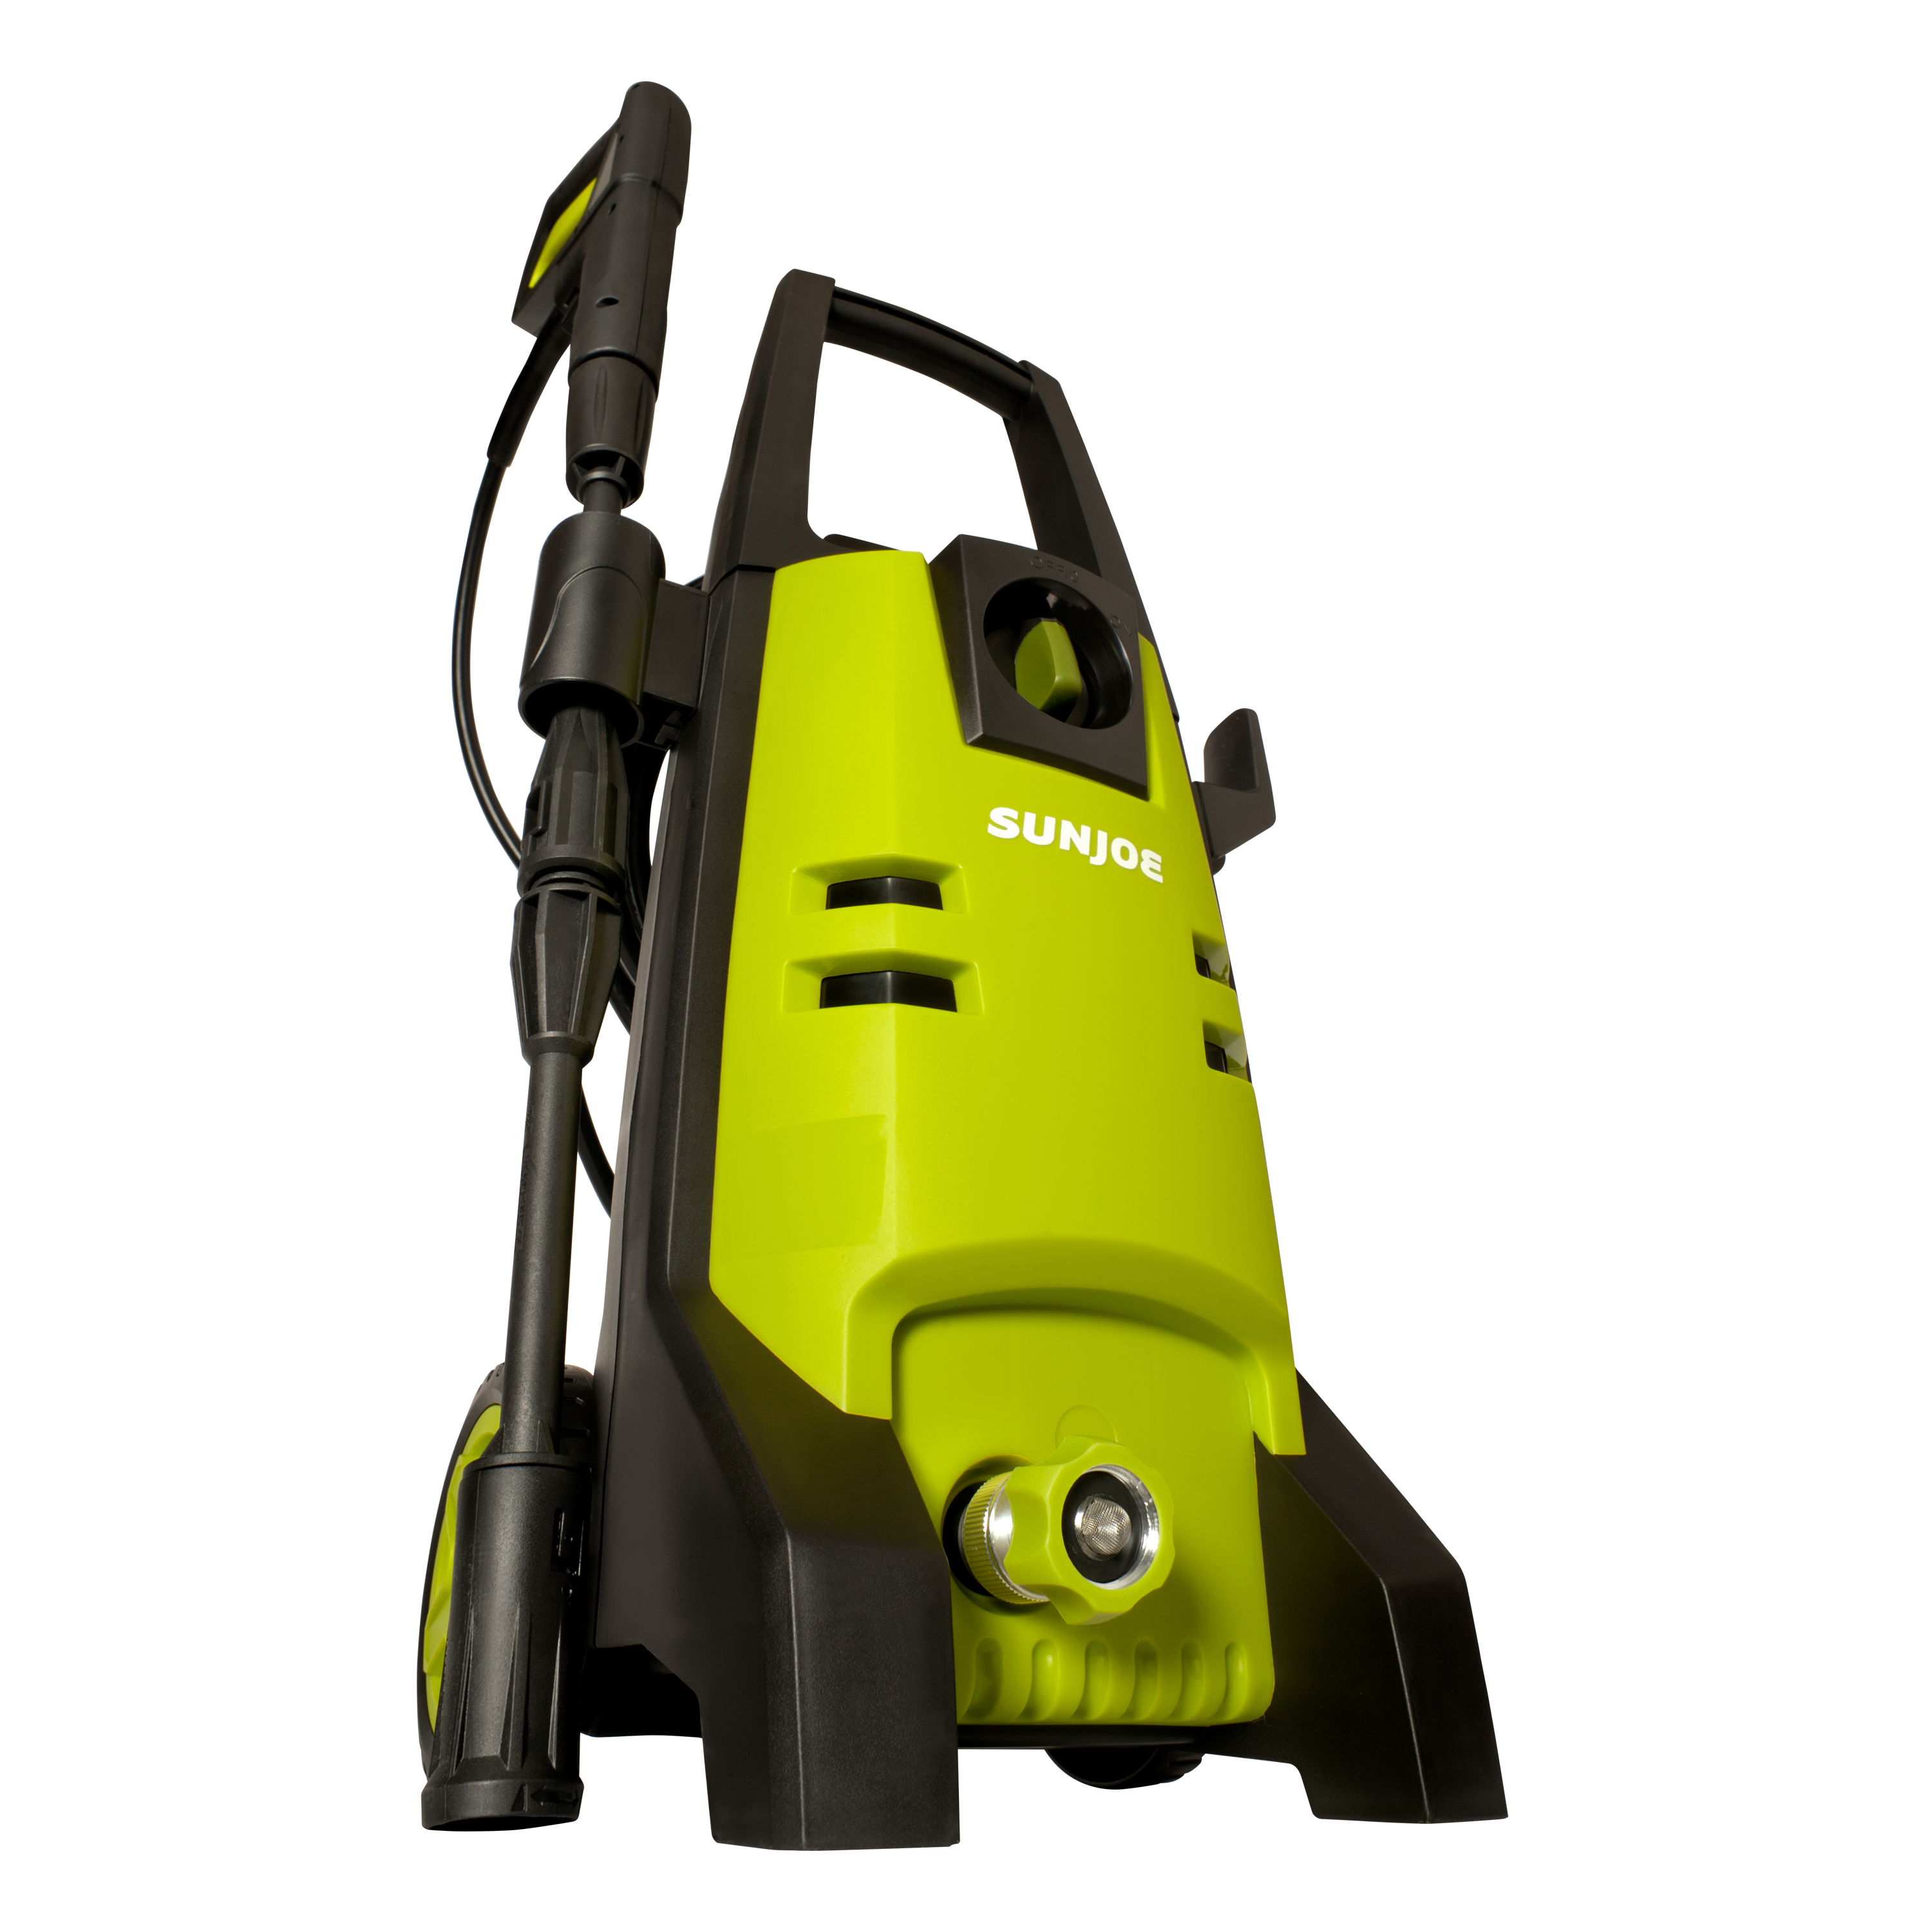 Sun Joe SPX1500 Electric Pressure Washer | 1740 PSI |1.59 GPM | 12-Amp